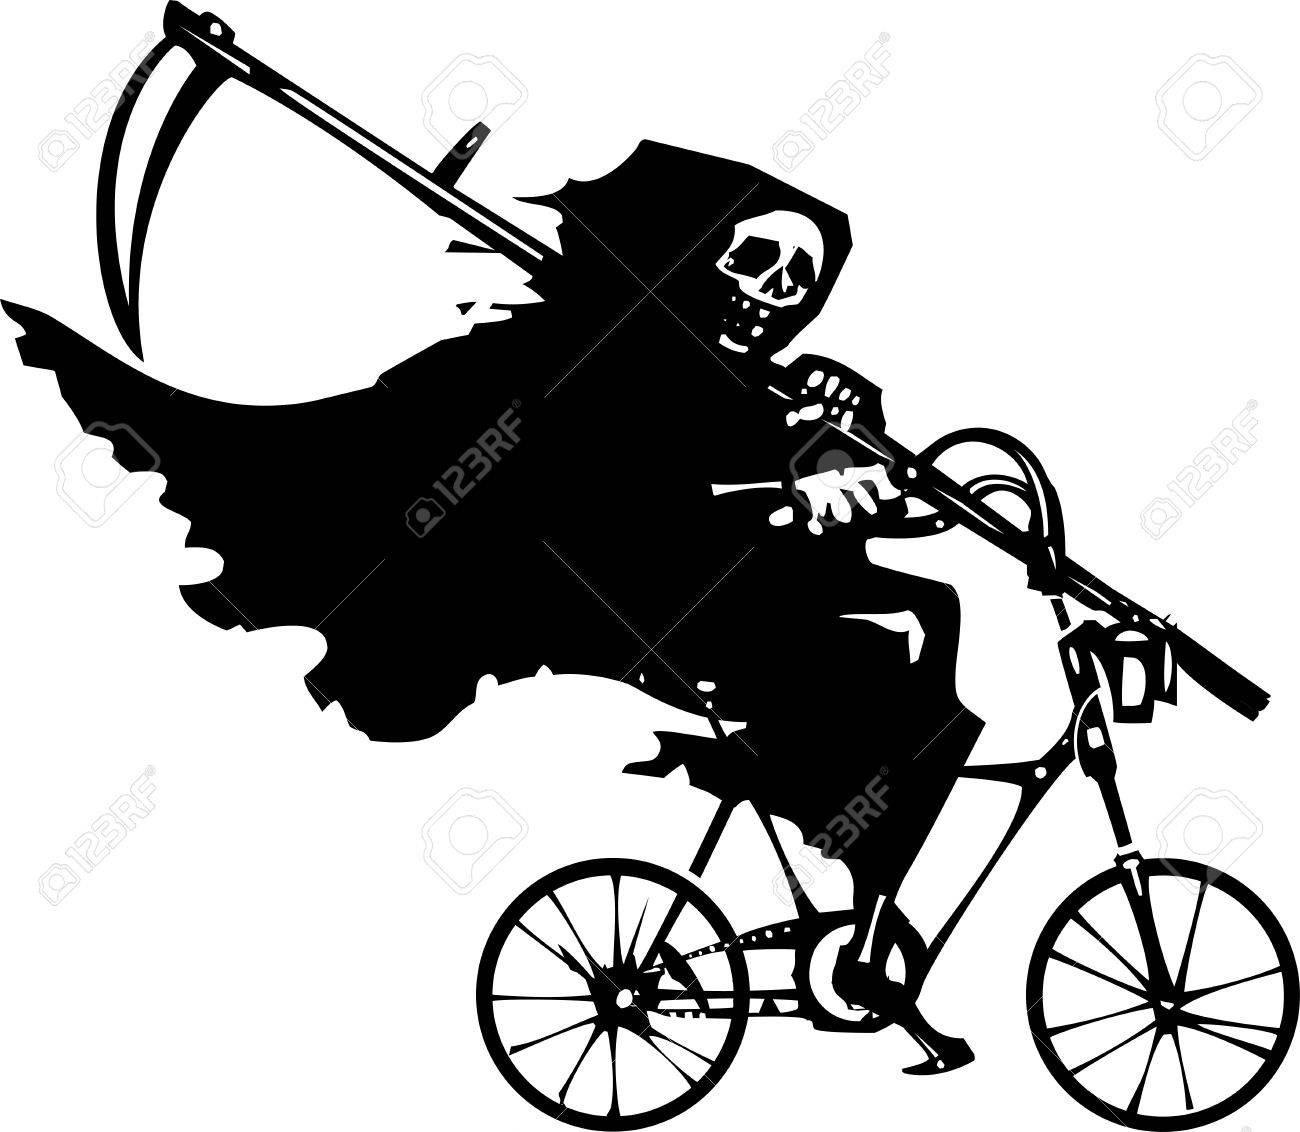 Woodcut styled image of death as the Grim reaper riding a bicycle. - 38778375